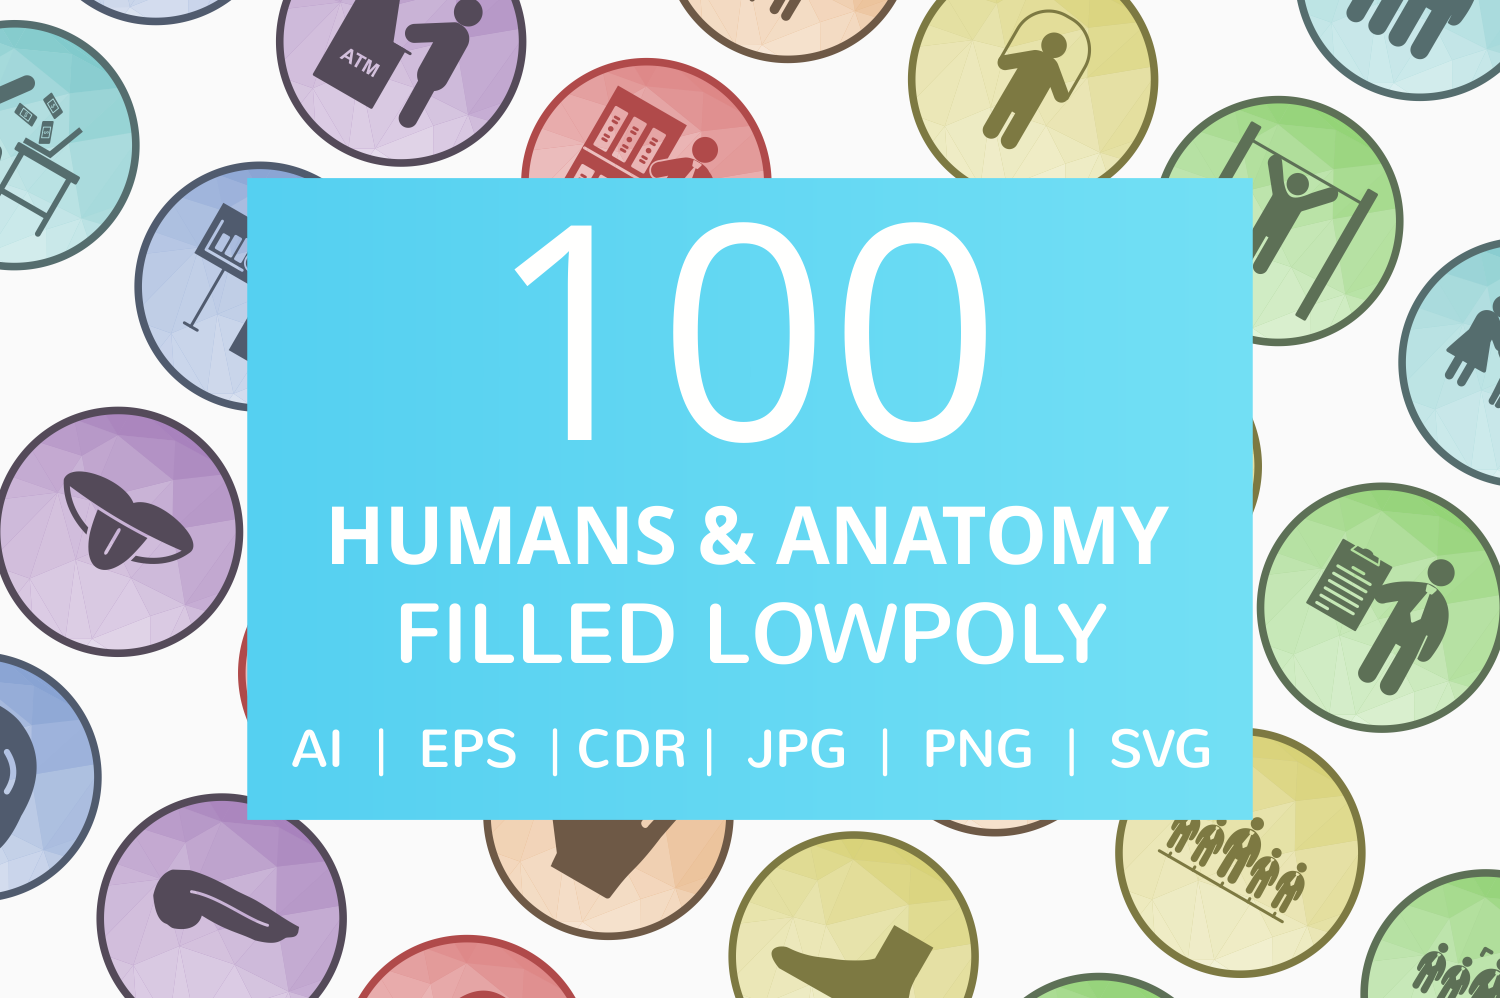 100 Humans & Anatomy Filled Low Poly Icons example image 1